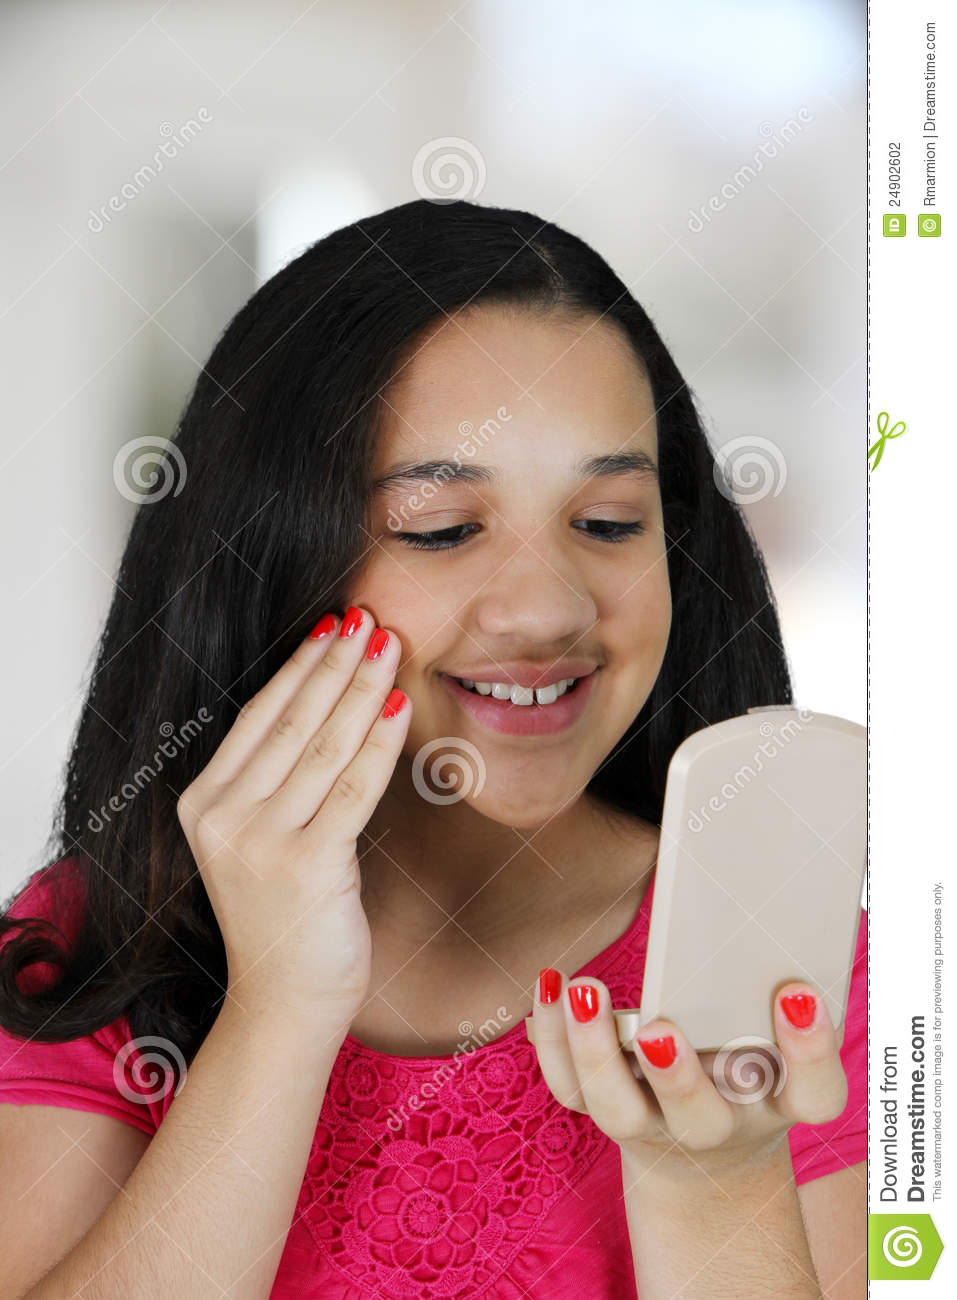 Putting On Makeup Stock Photo. Image Of Pretty, Makeup